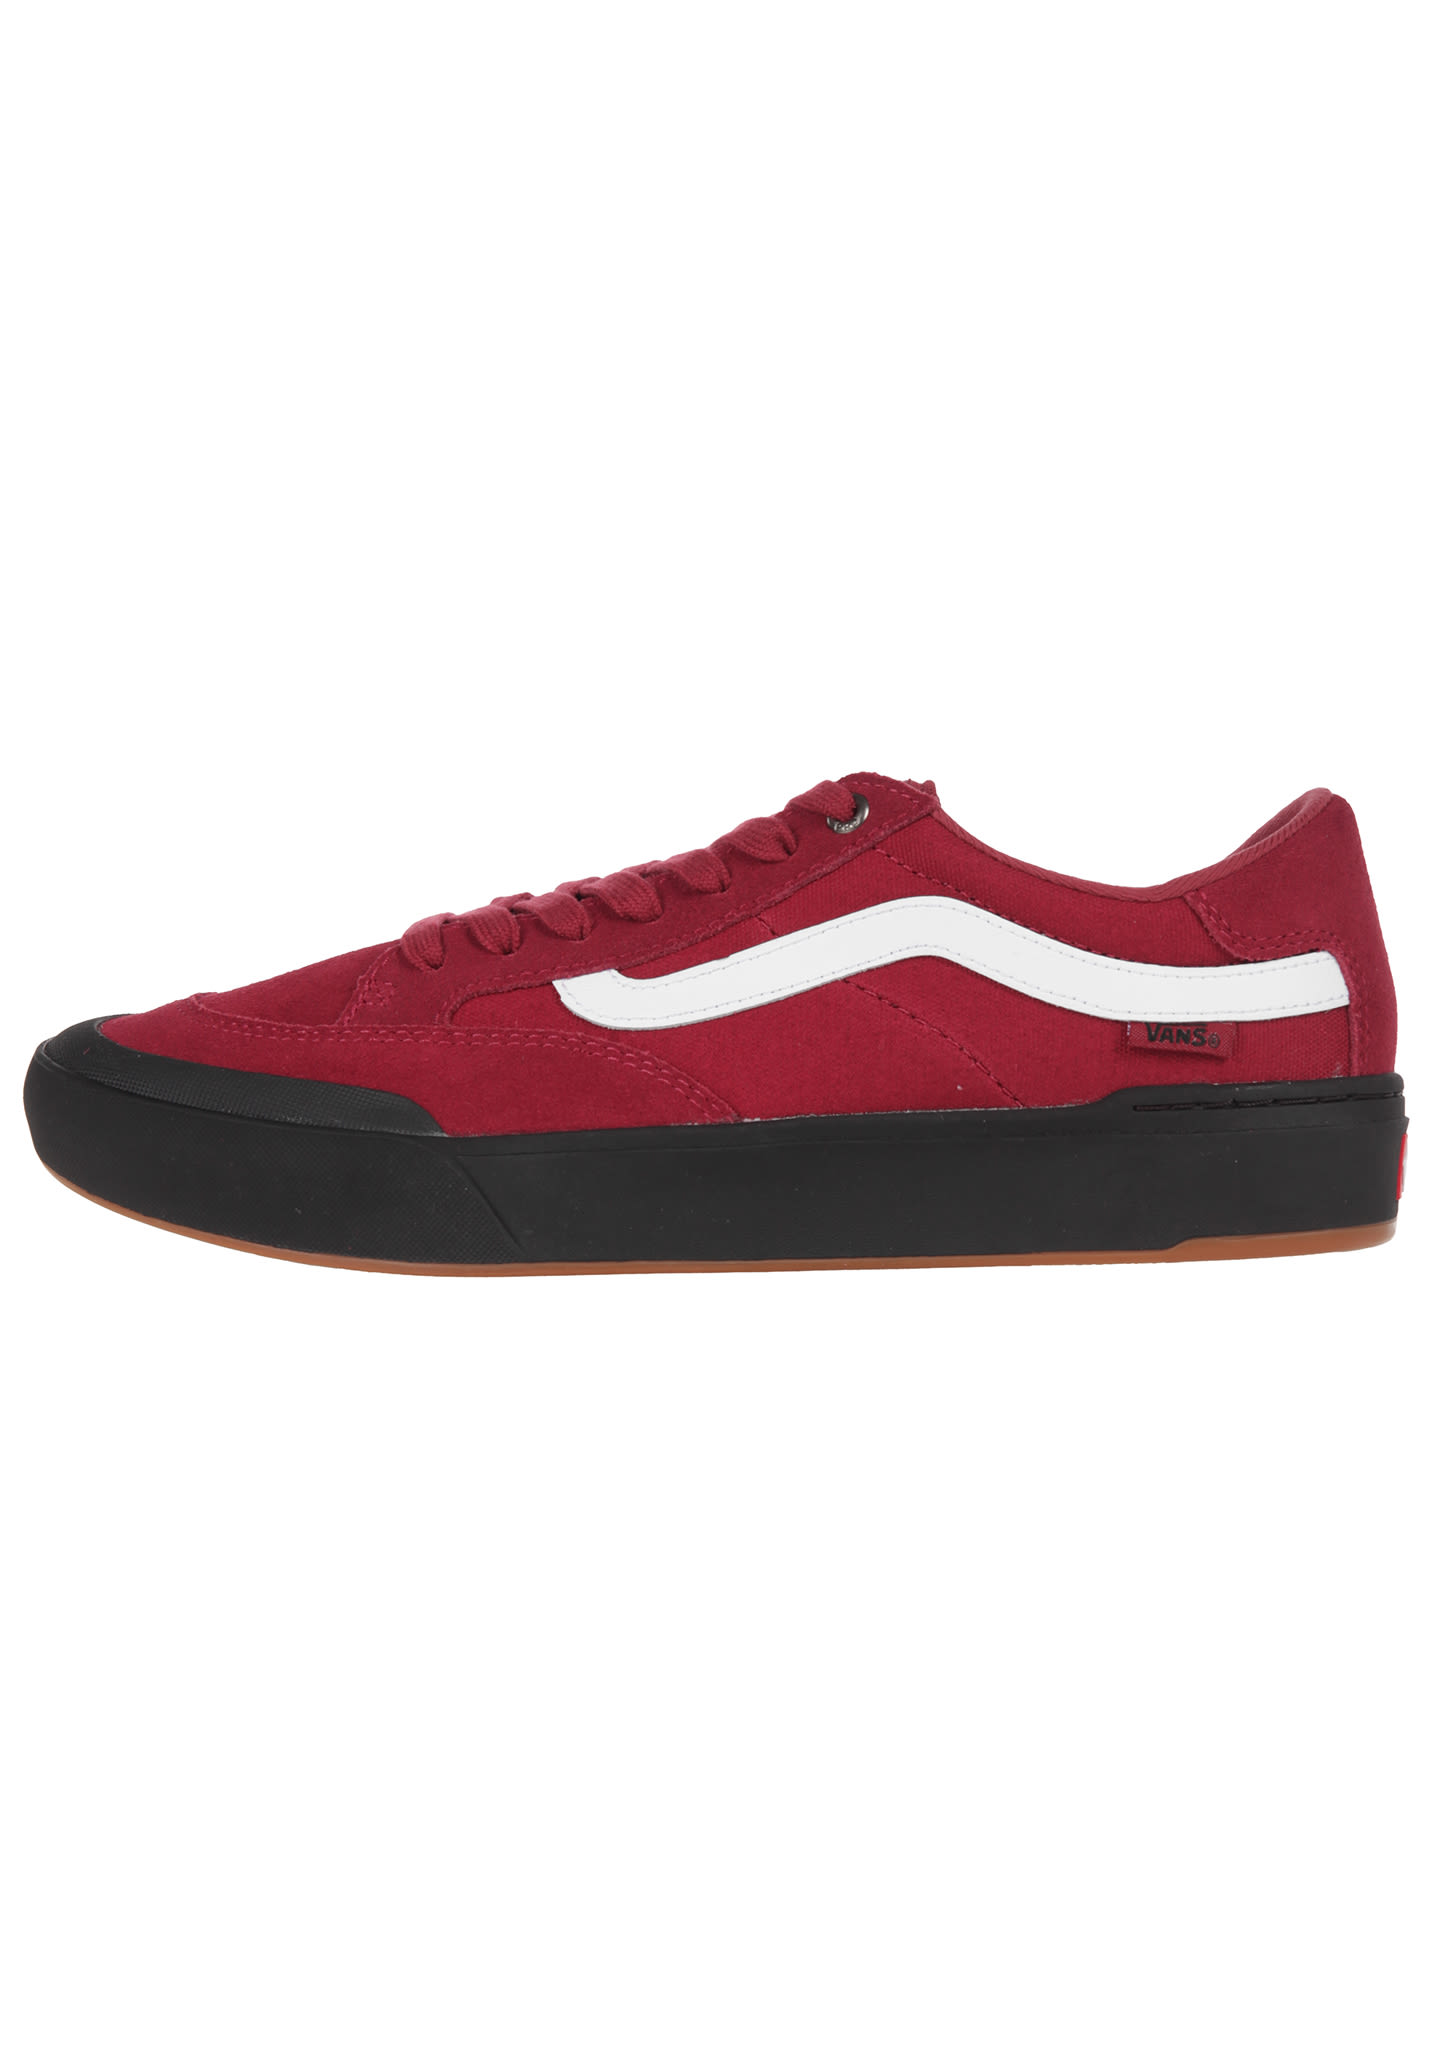 b42ce1f0b7a9 Vans berle pro sneakers for men red planet sports jpg 1430x2048 Vans pro red